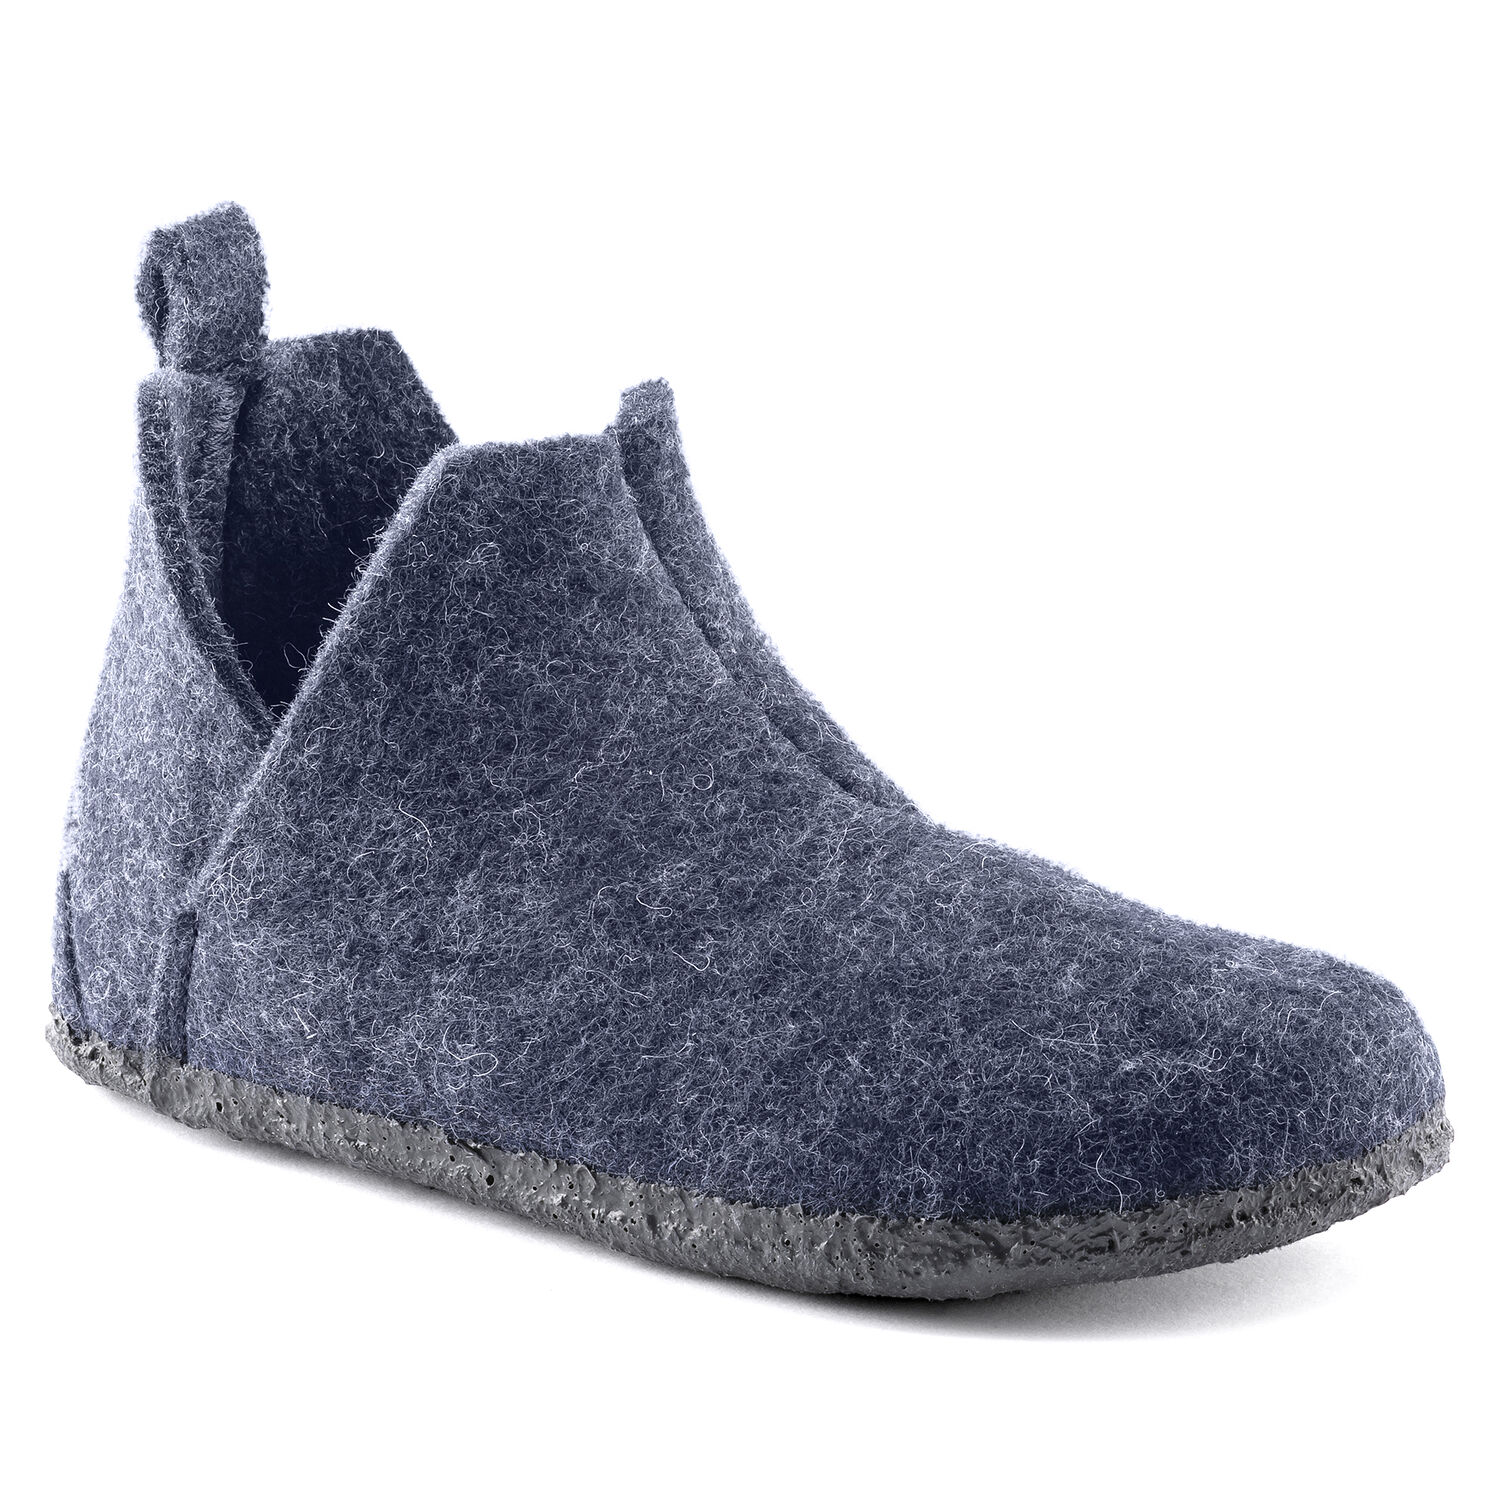 Andermatt Kids Wool Felt